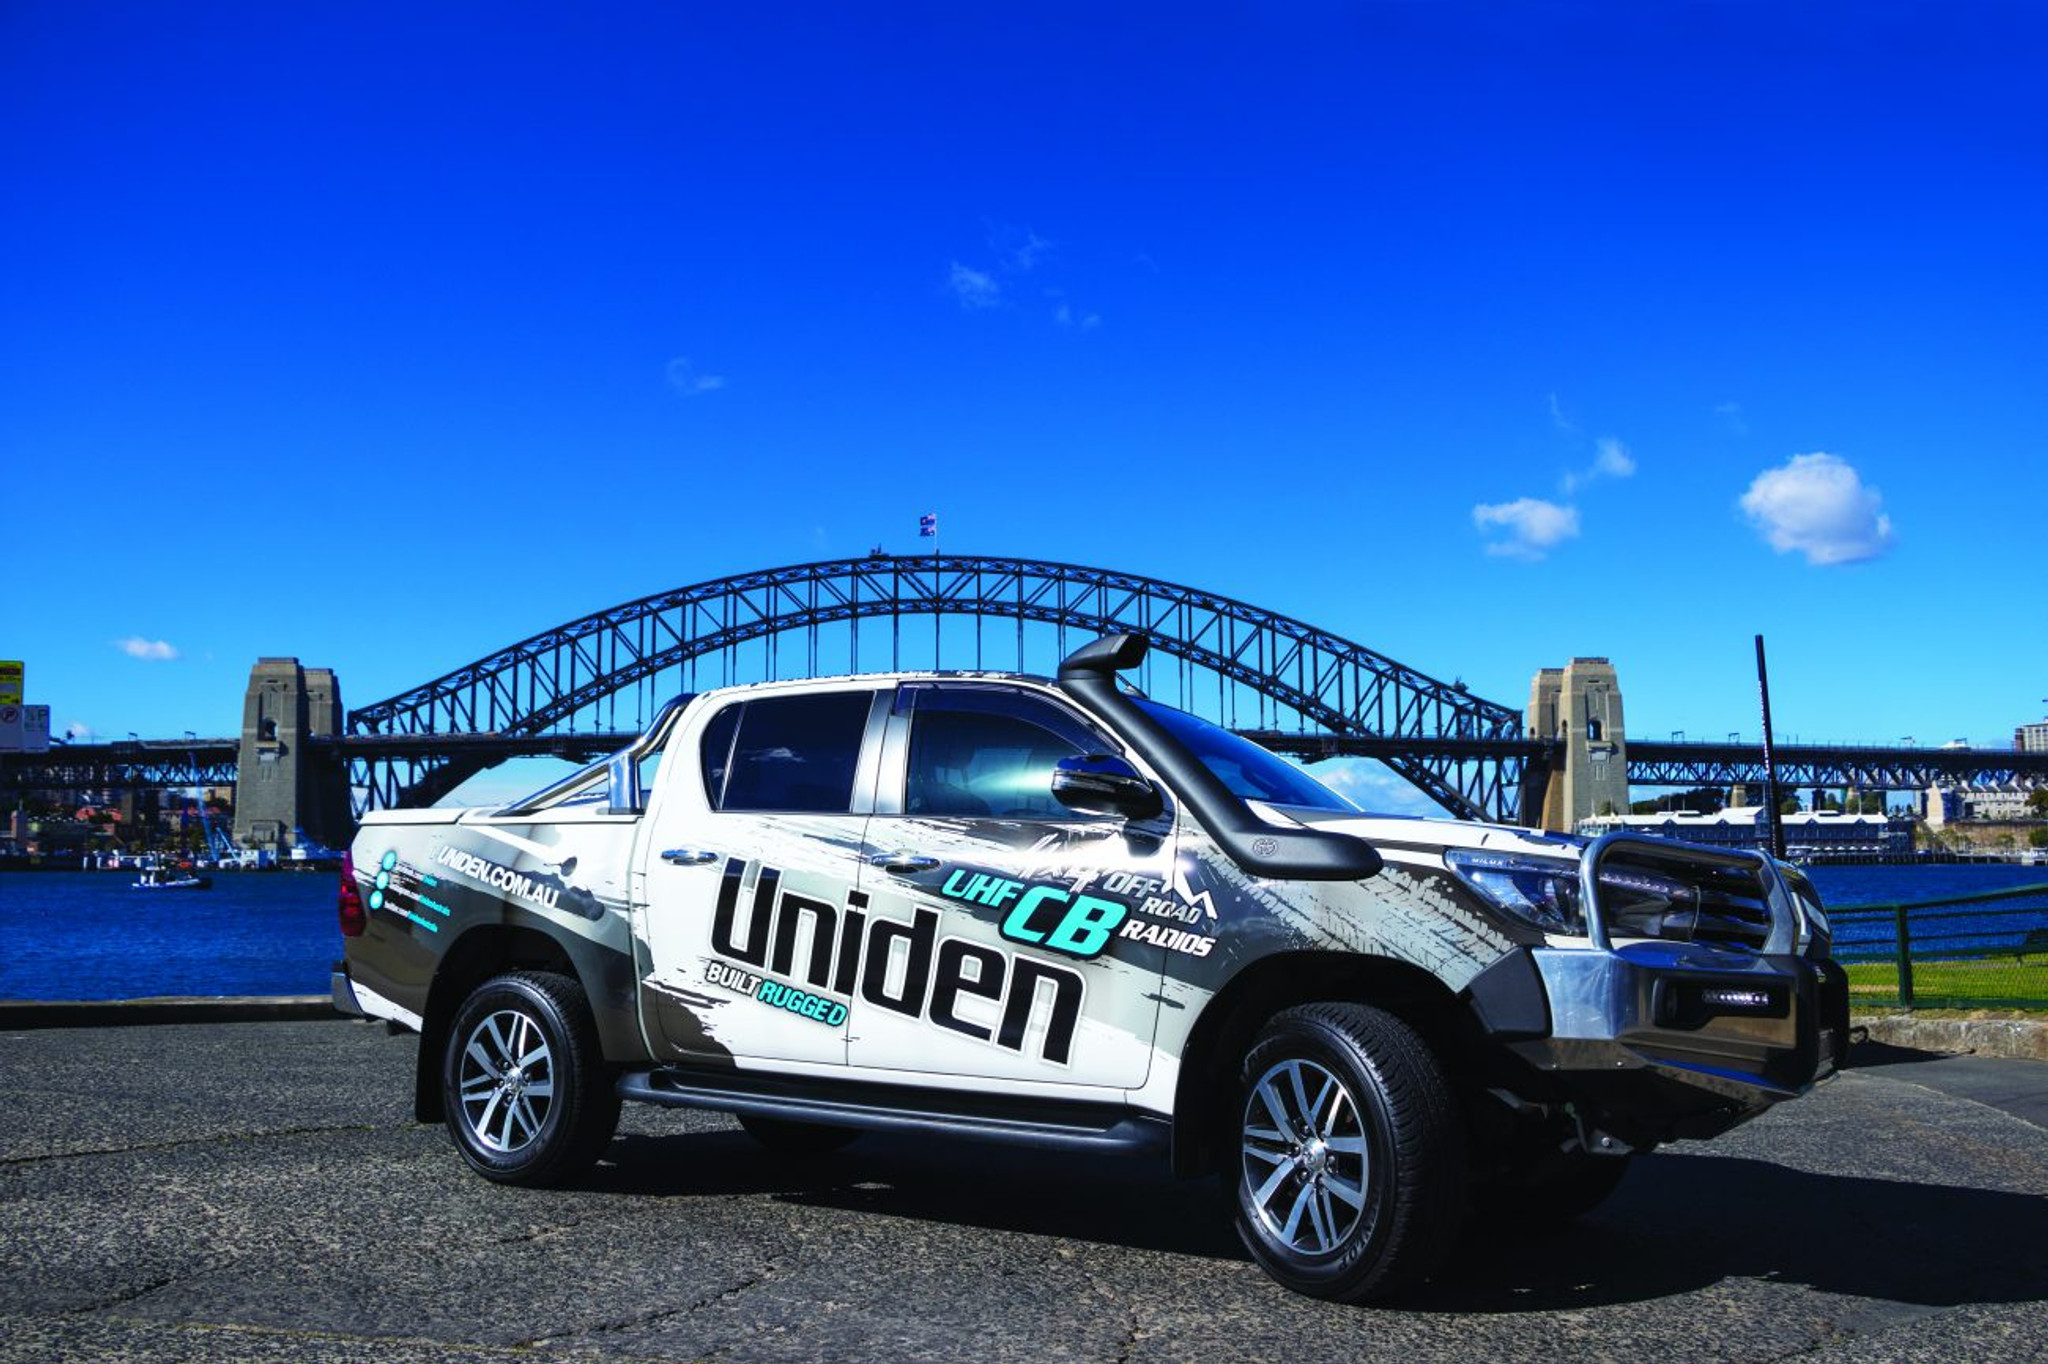 Uniden UHF radios and antennas now available | Phil Gilbert Toyota Parts